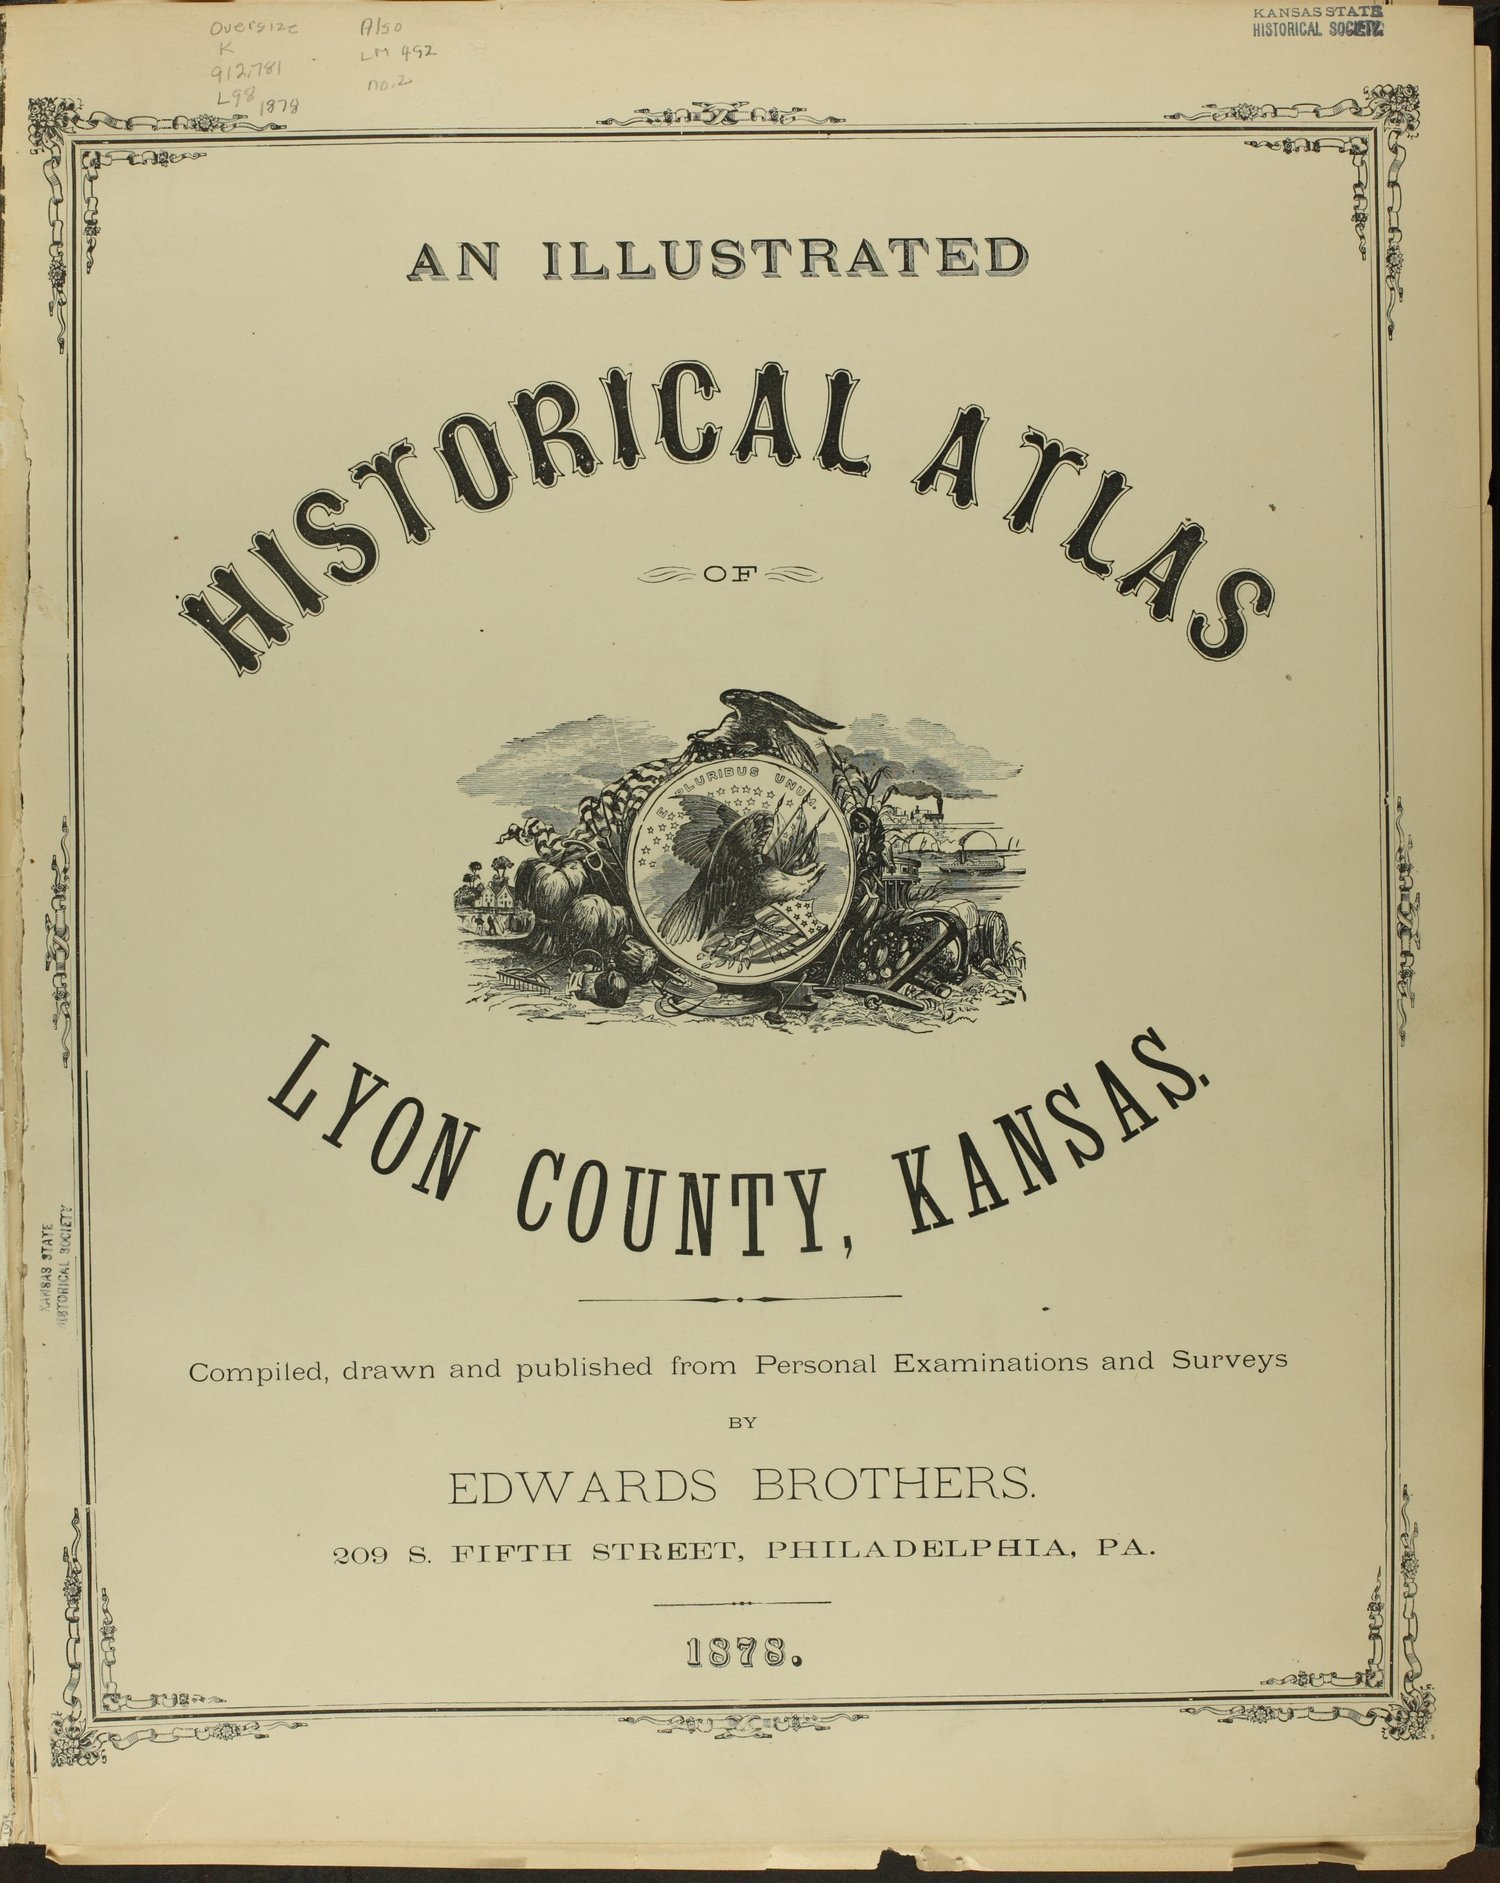 An illustrated historical atlas of Lyon county, Kansas - Title Page